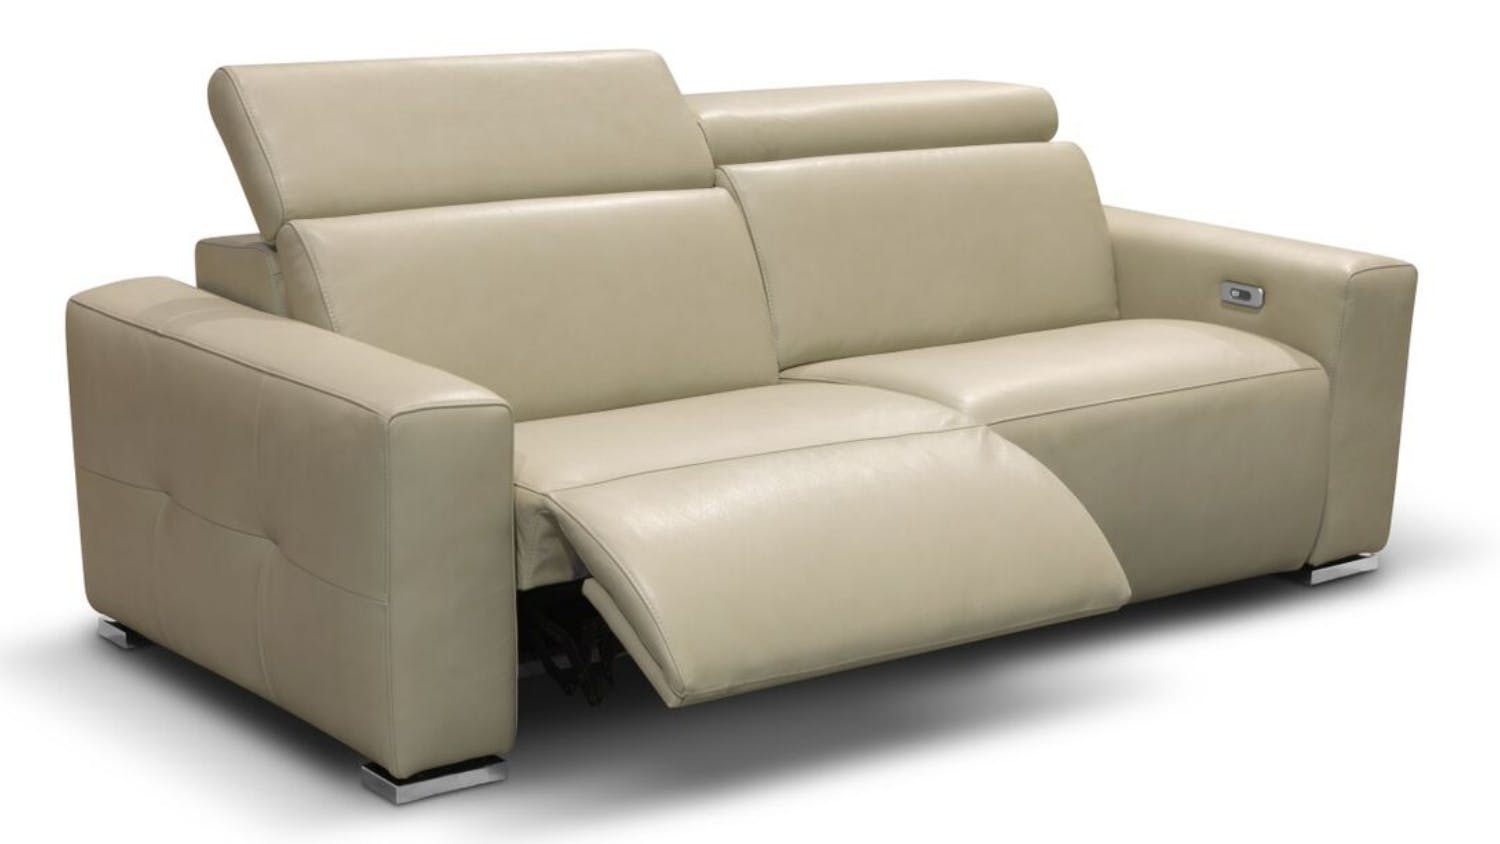 Saporini arena italian full leather 2 seater sofa harvey for Sofa chair malaysia